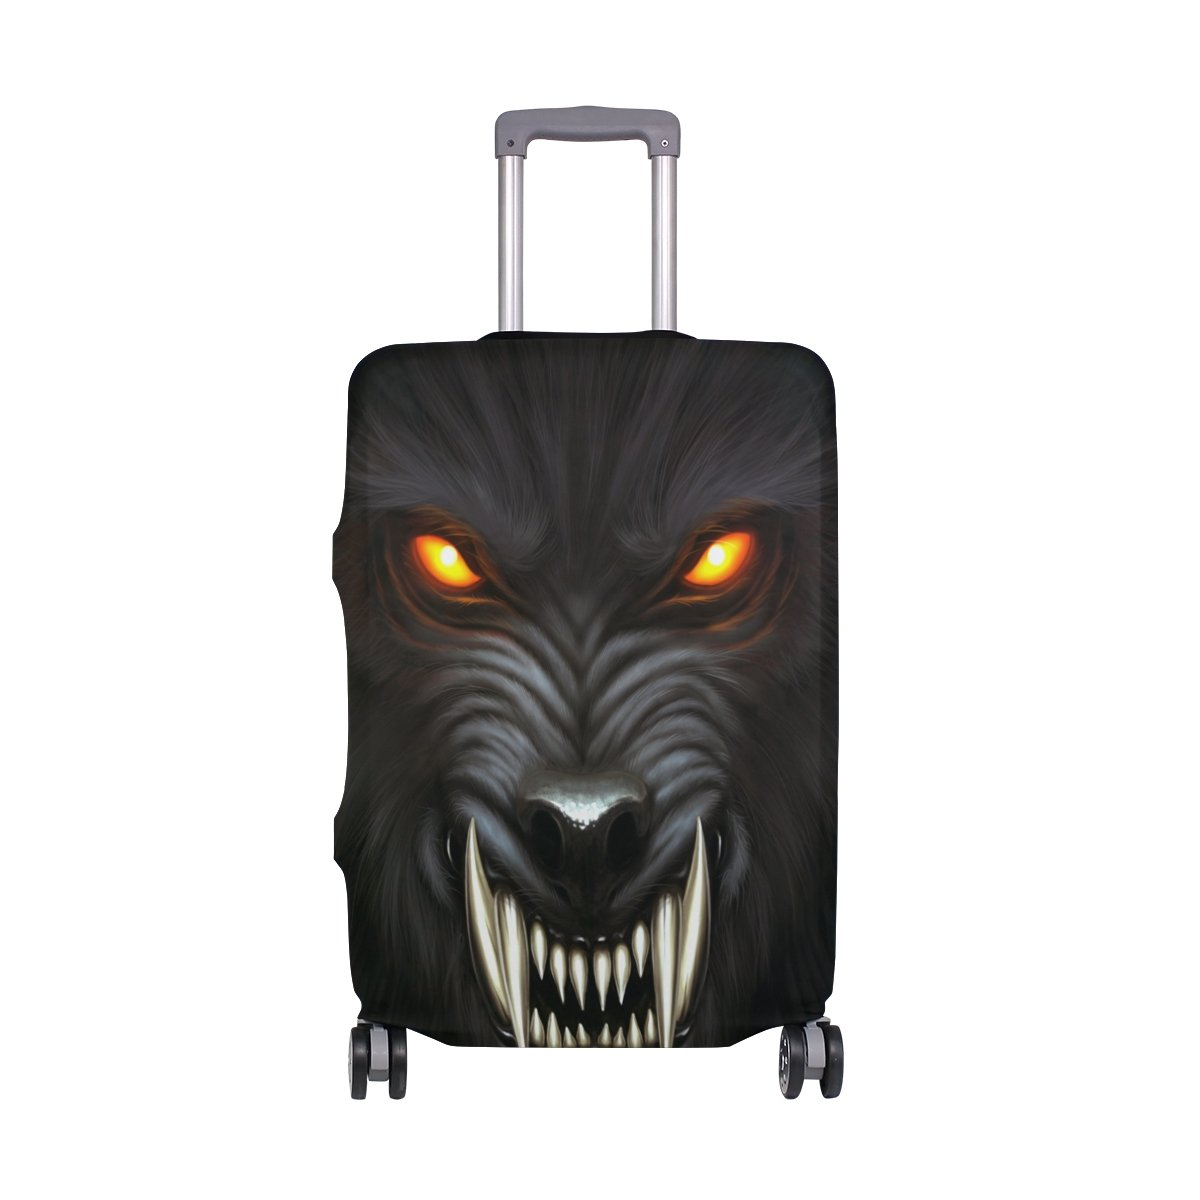 Wolf Luggage Cover Suitcase Protector Washable Spandex Baggage Cover with Zipper for Travel, Business and Outdoor by Yomole (Image #1)